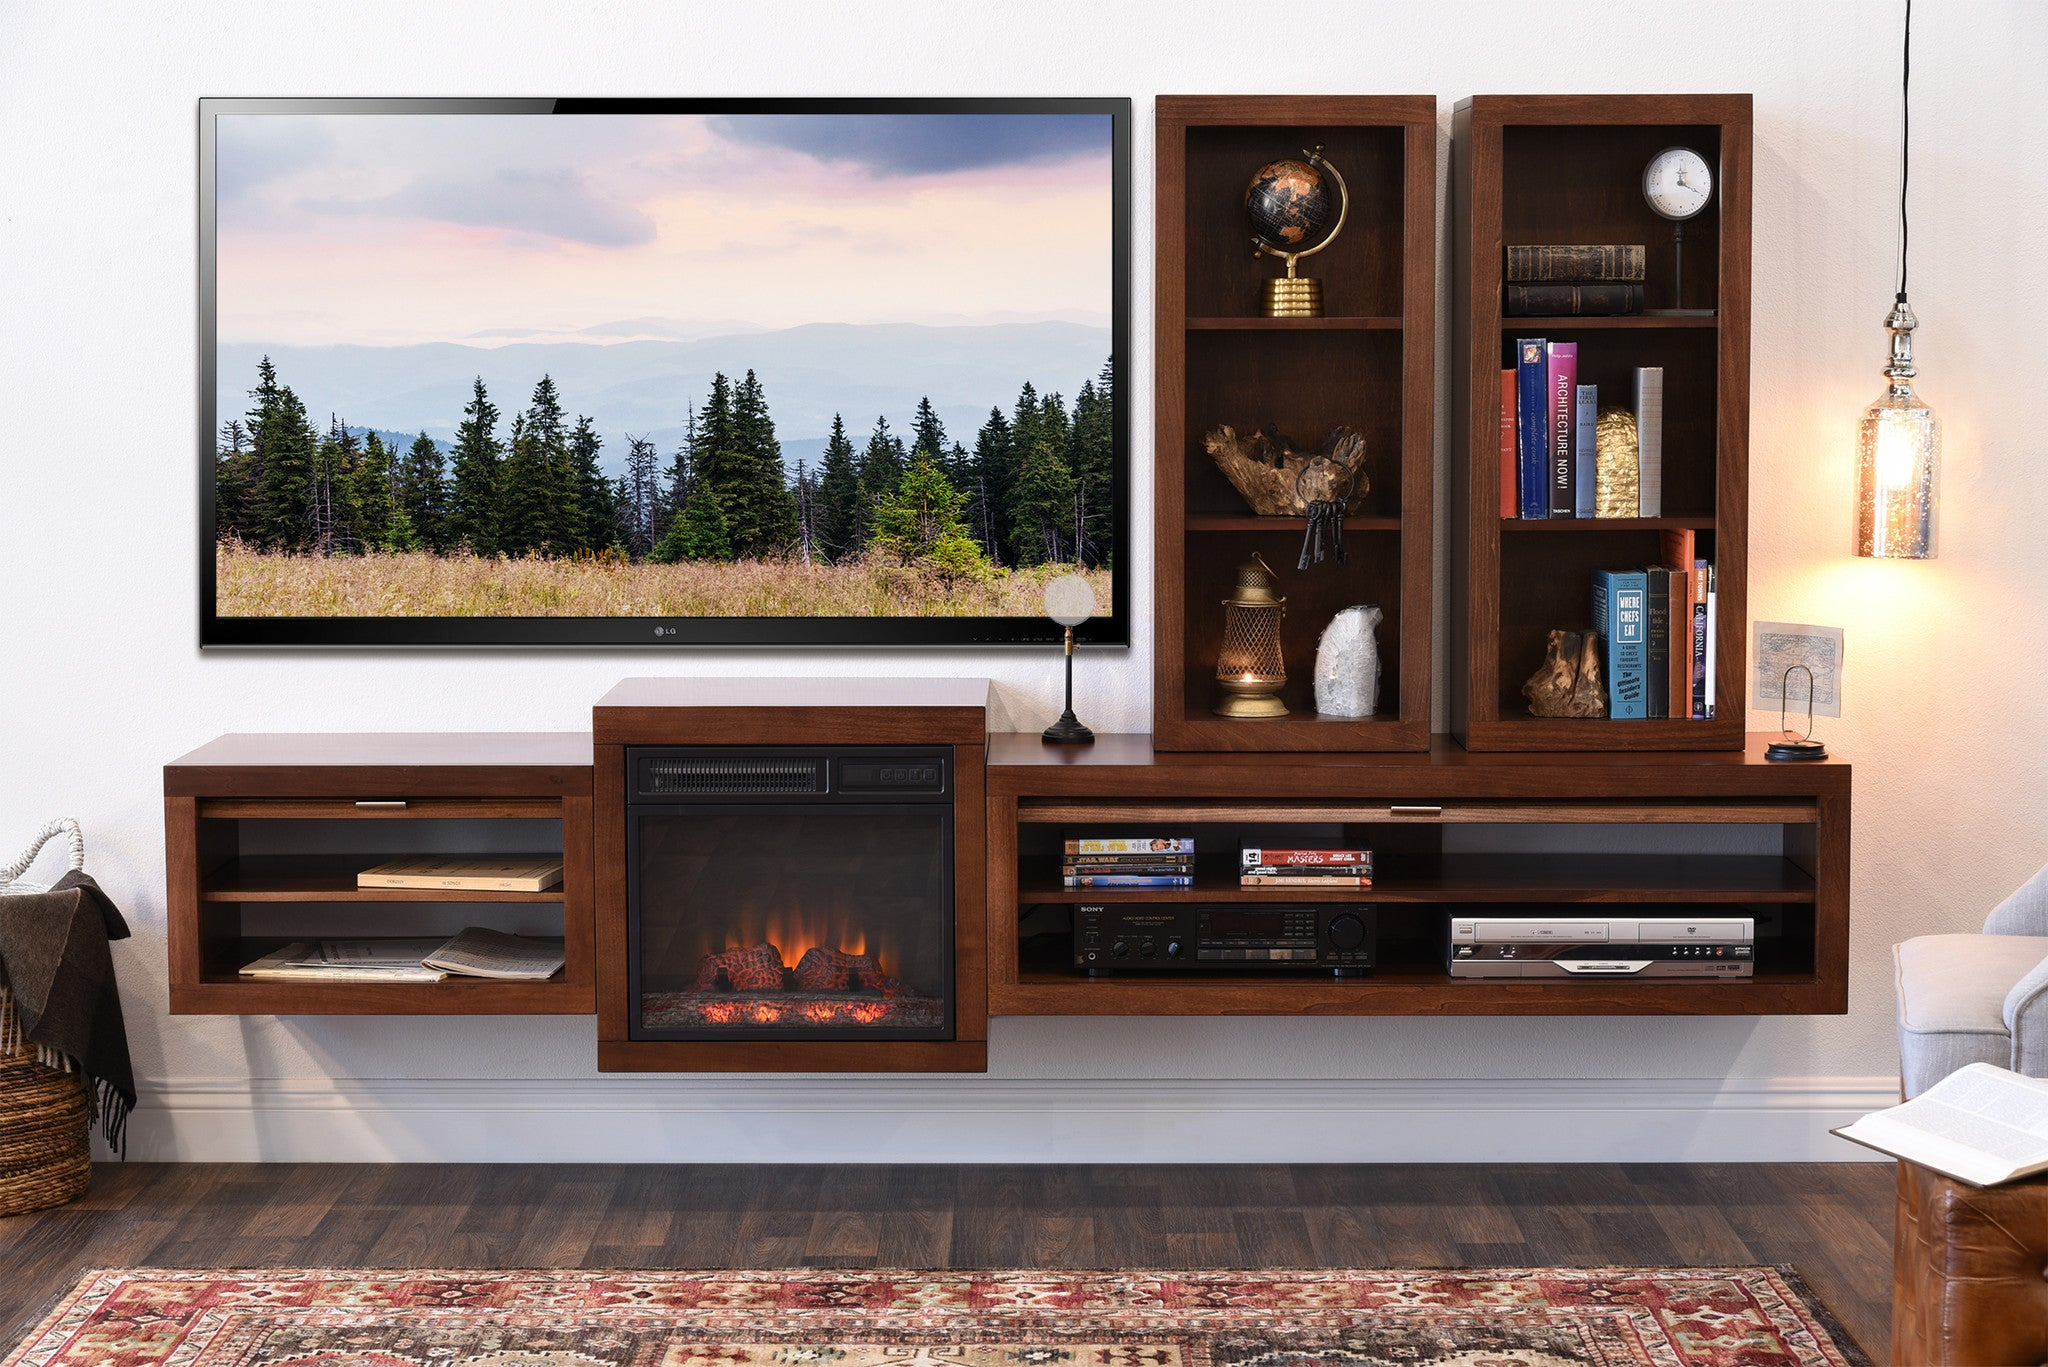 Fireplace Hanging Floating Rustic Hanging Wall Mountable TV Stand Eco Geo Mocha 2048x